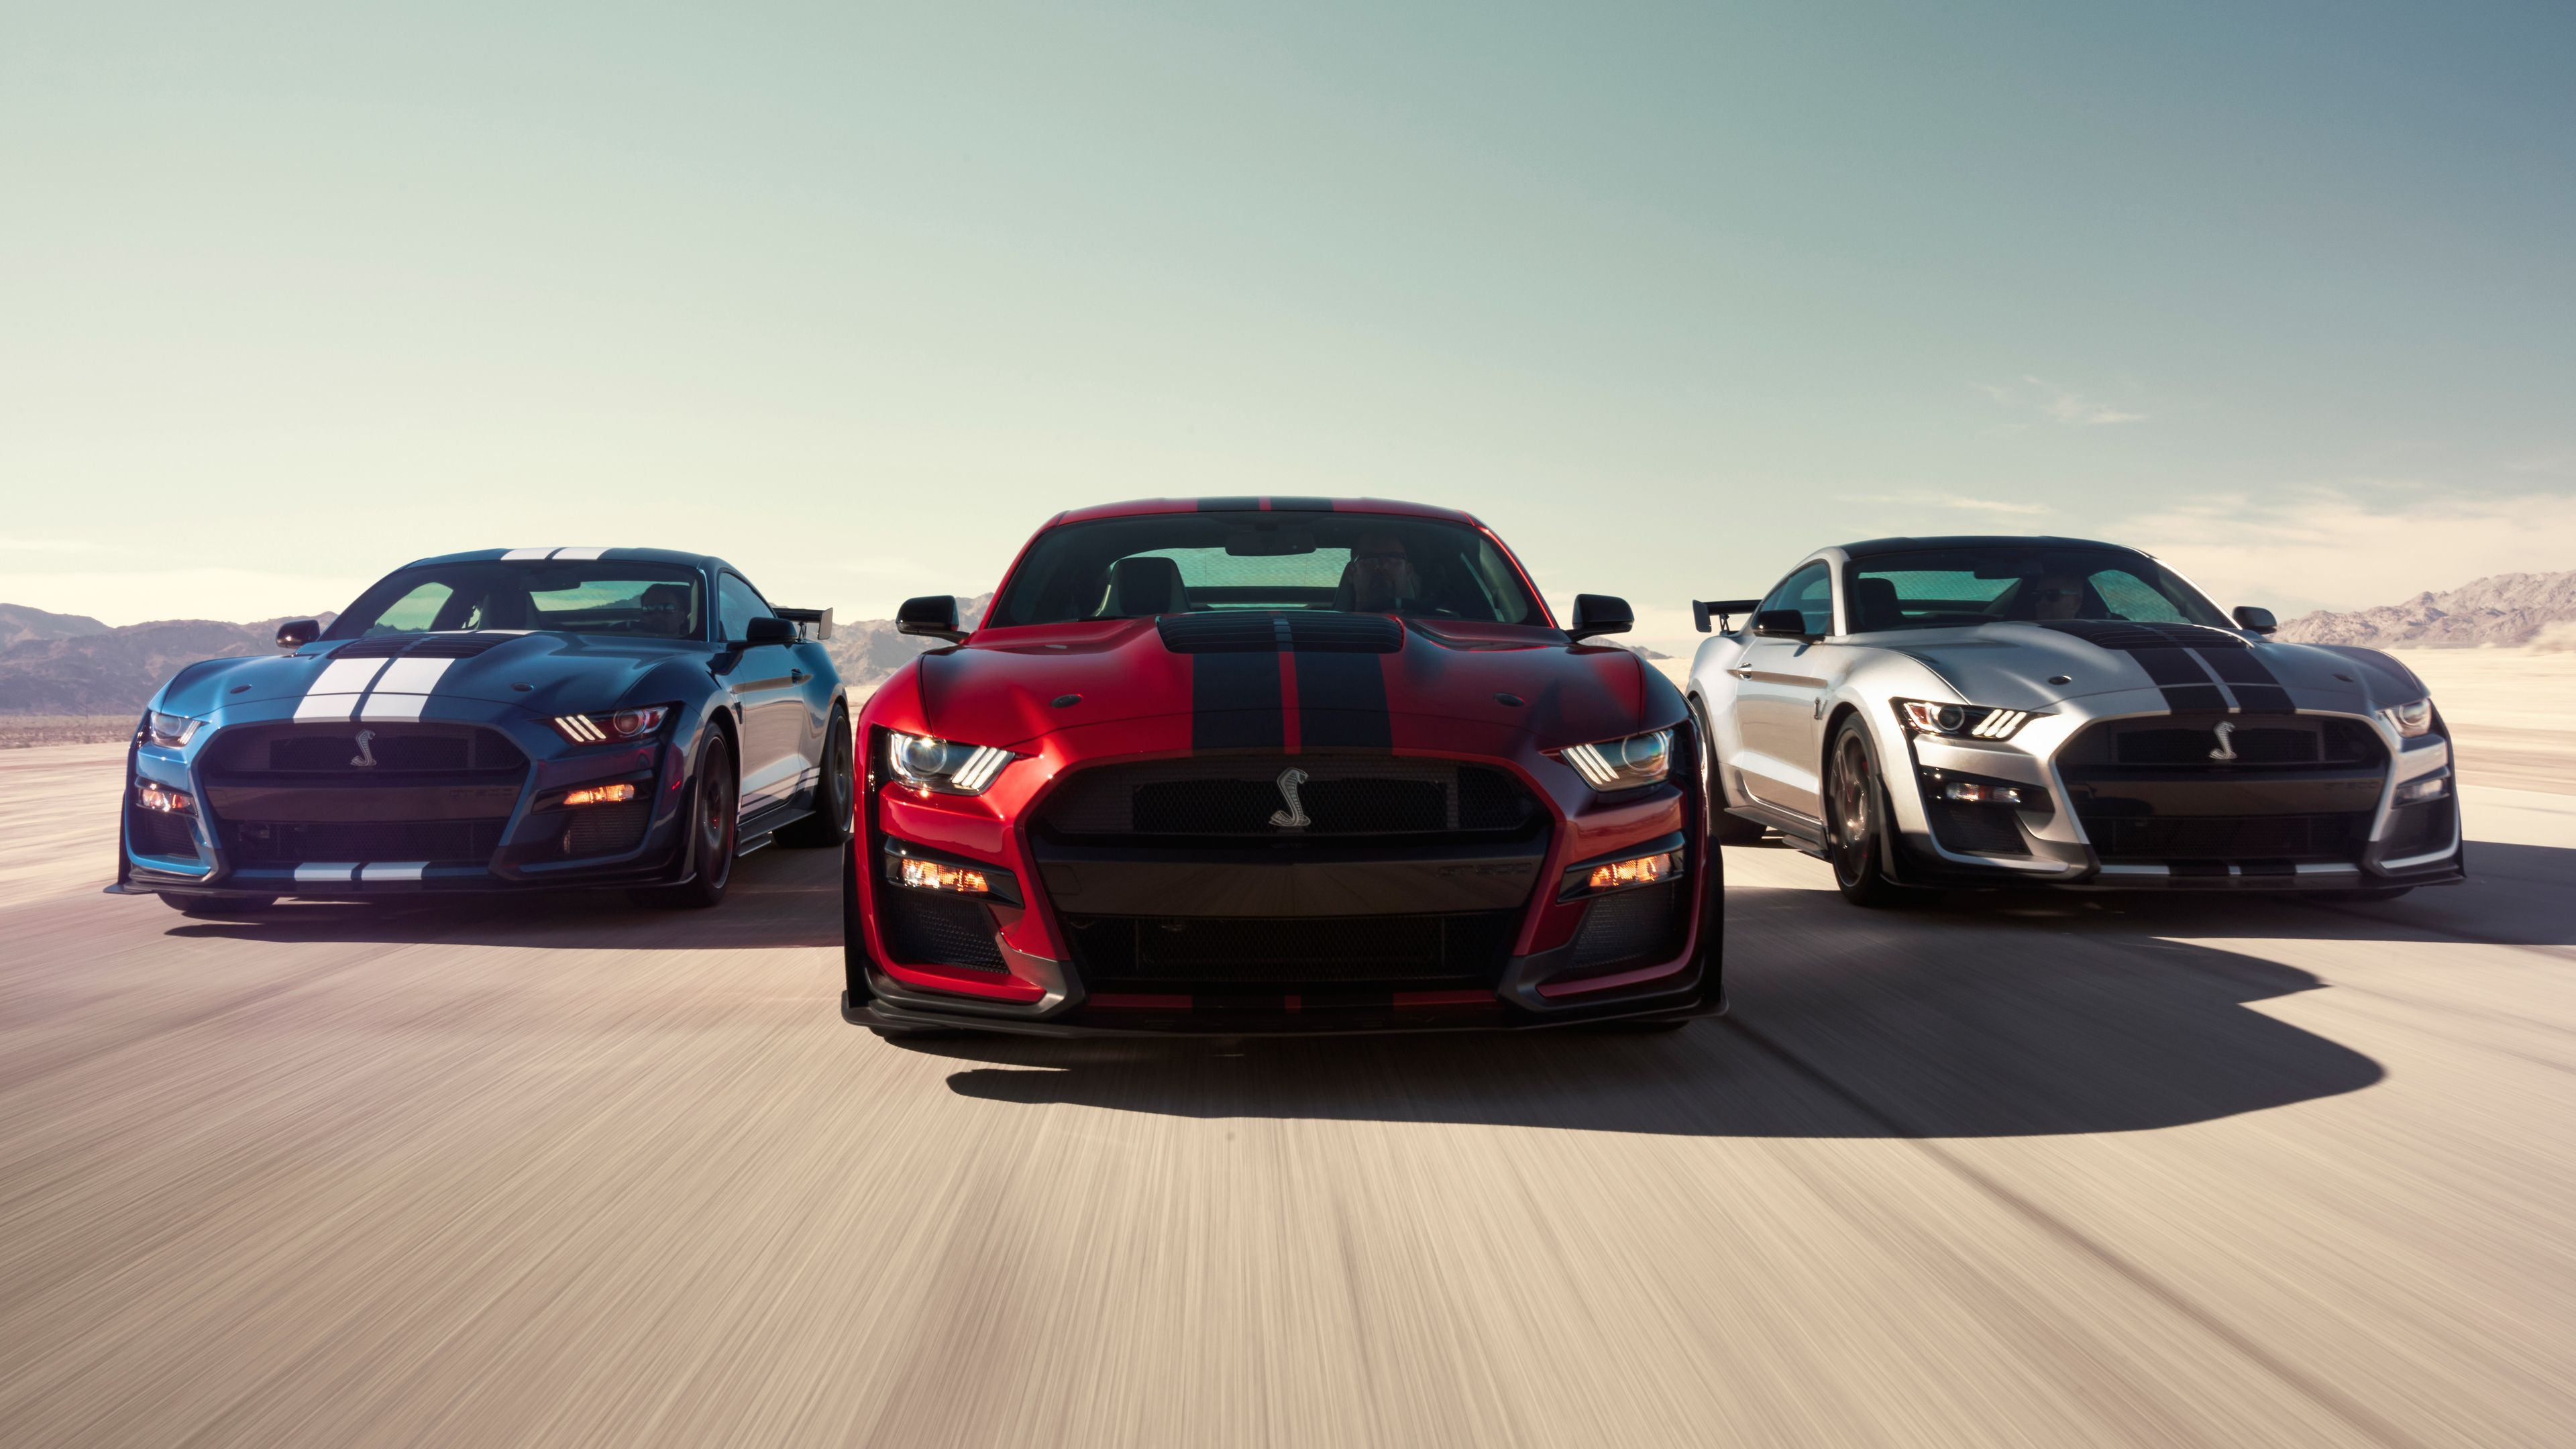 Wallpaper 4k 2020 Ford Mustang Shelby Gt500 4k 2020 Cars Wallpapers 4k Wallpapers 5k Wallpapers 8k Wallpapers Cars Wallpapers Ford Mustang Wallpapers Ford Ford Mustang Shelby Mustang Gt500 Shelby Gt500